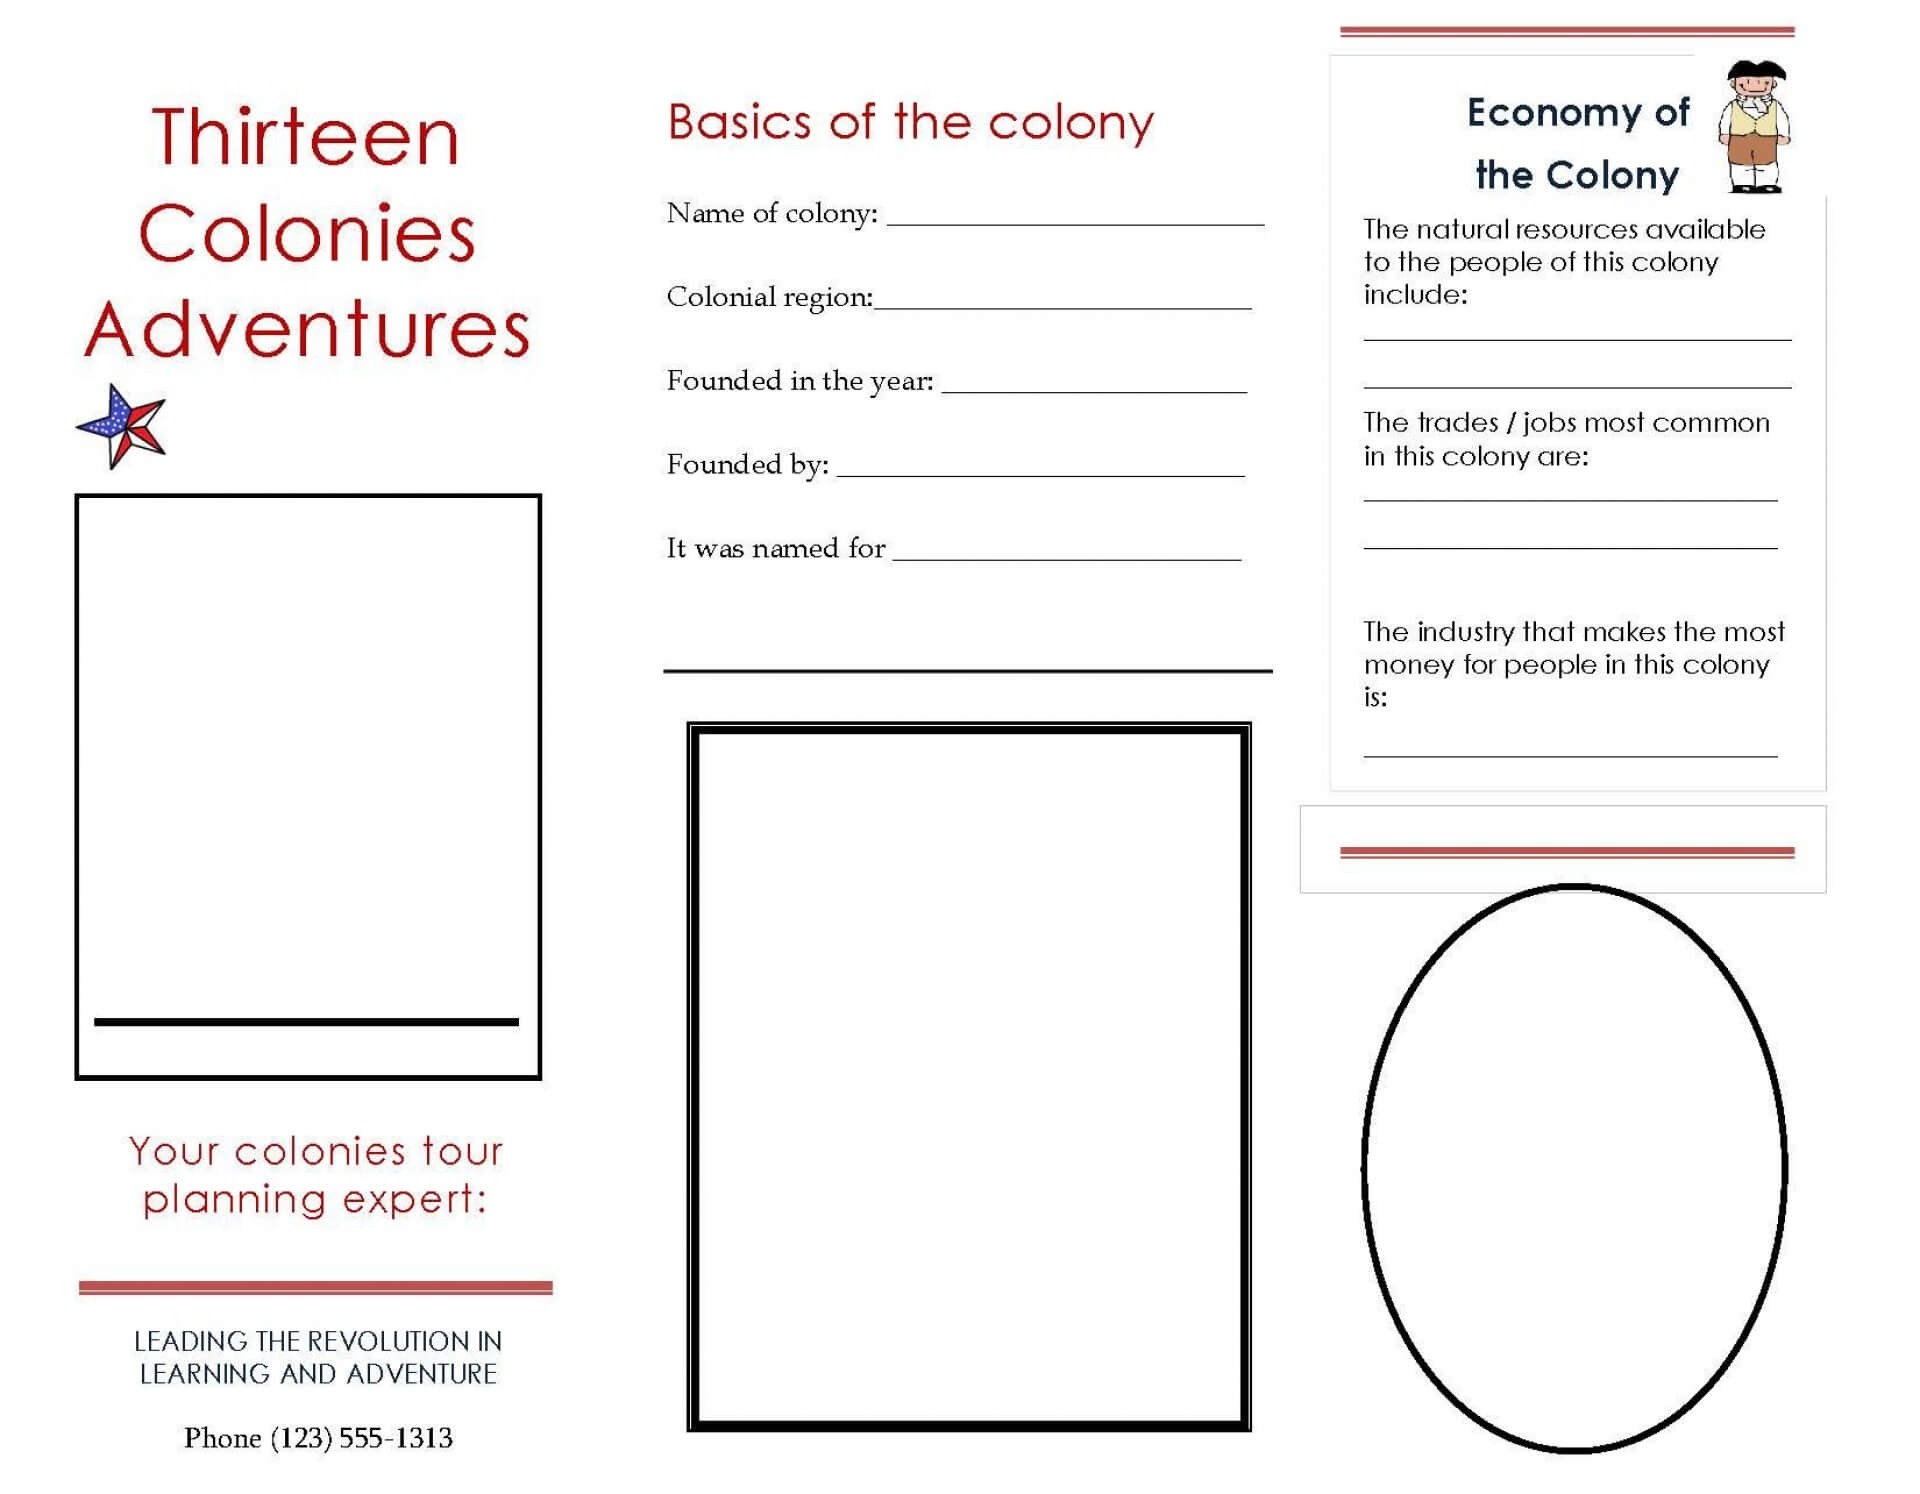 015 Photo Travel Brochure For Word Template Ideas Top For Travel Brochure Template For Students